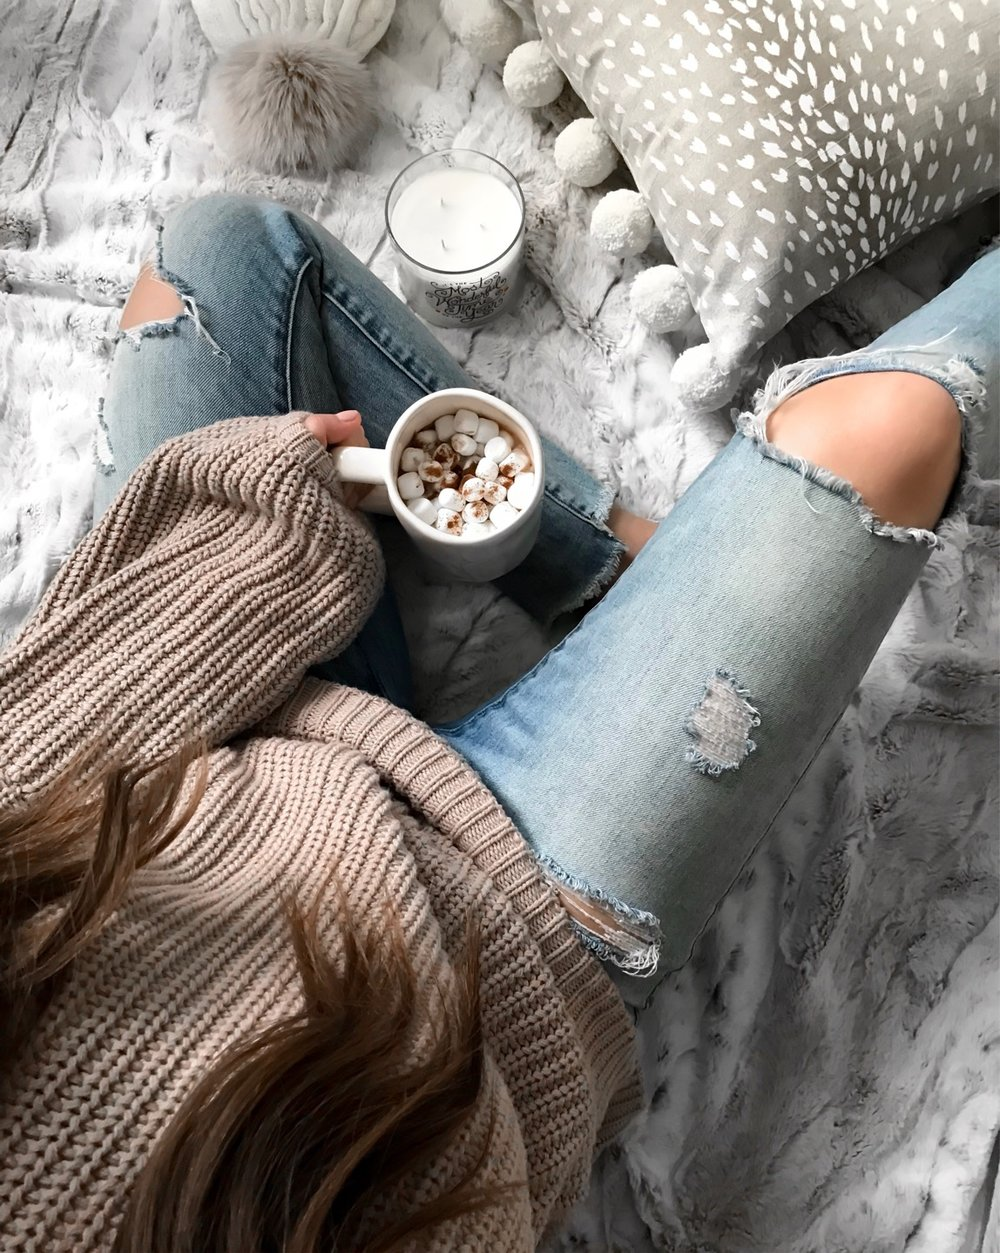 Weekend Sales & Instagram Round Up | Pine Barren Beauty | winter fashion, winter outfit idea, winter essentials, distressed denim, cozy sweater, view from above, holiday flat lay